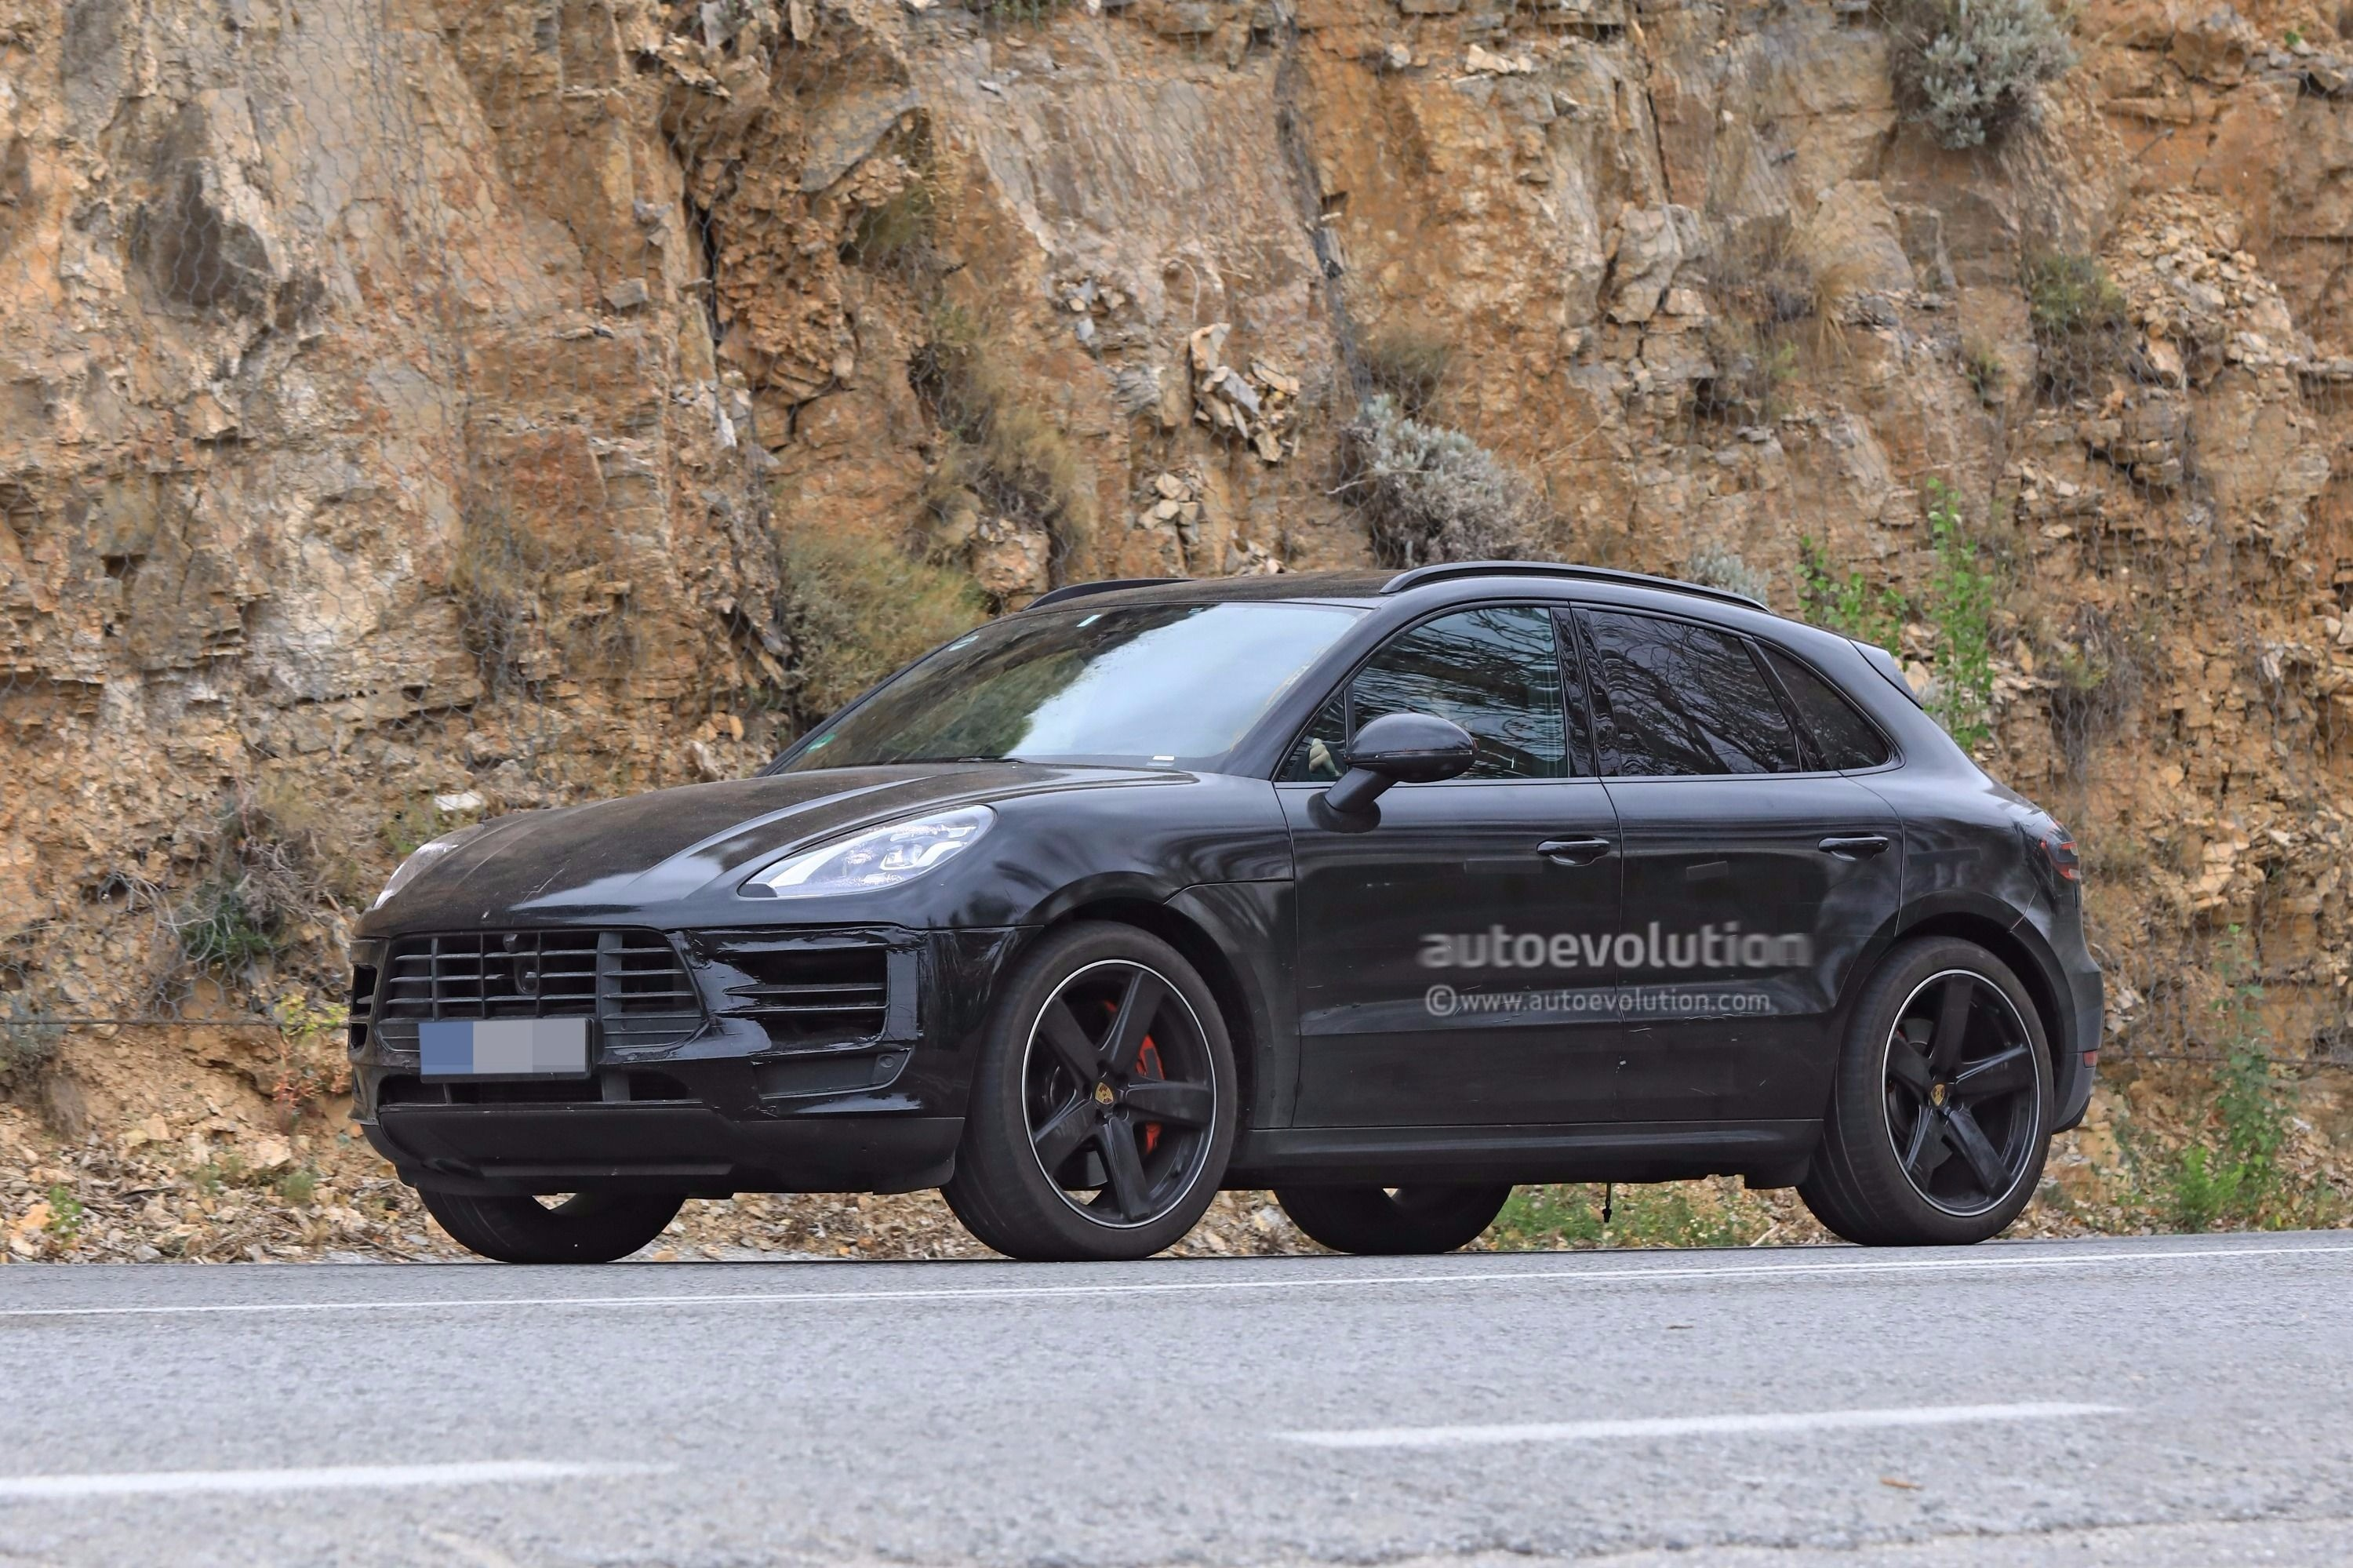 spyshots 2019 porsche macan prototype poses for the camera autoevolution. Black Bedroom Furniture Sets. Home Design Ideas